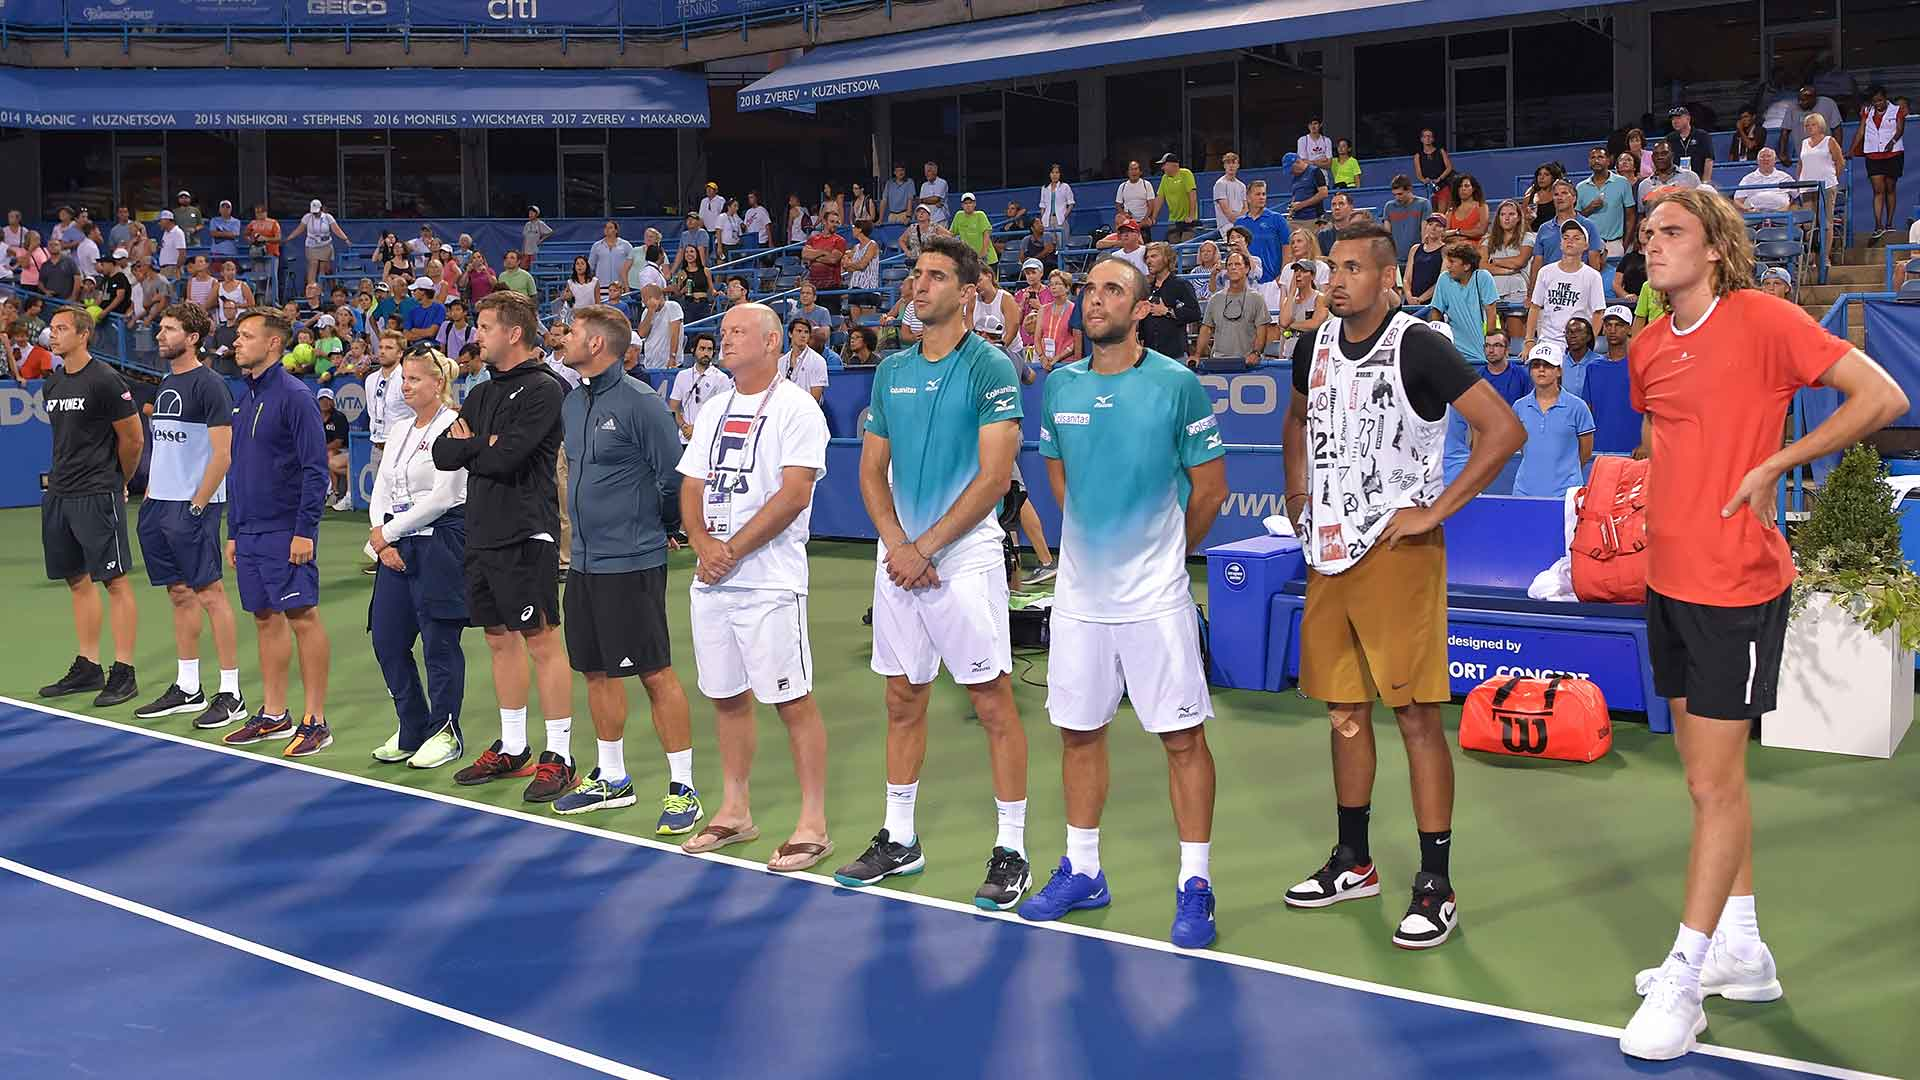 Citi Open pays tribute to Peter McNamara